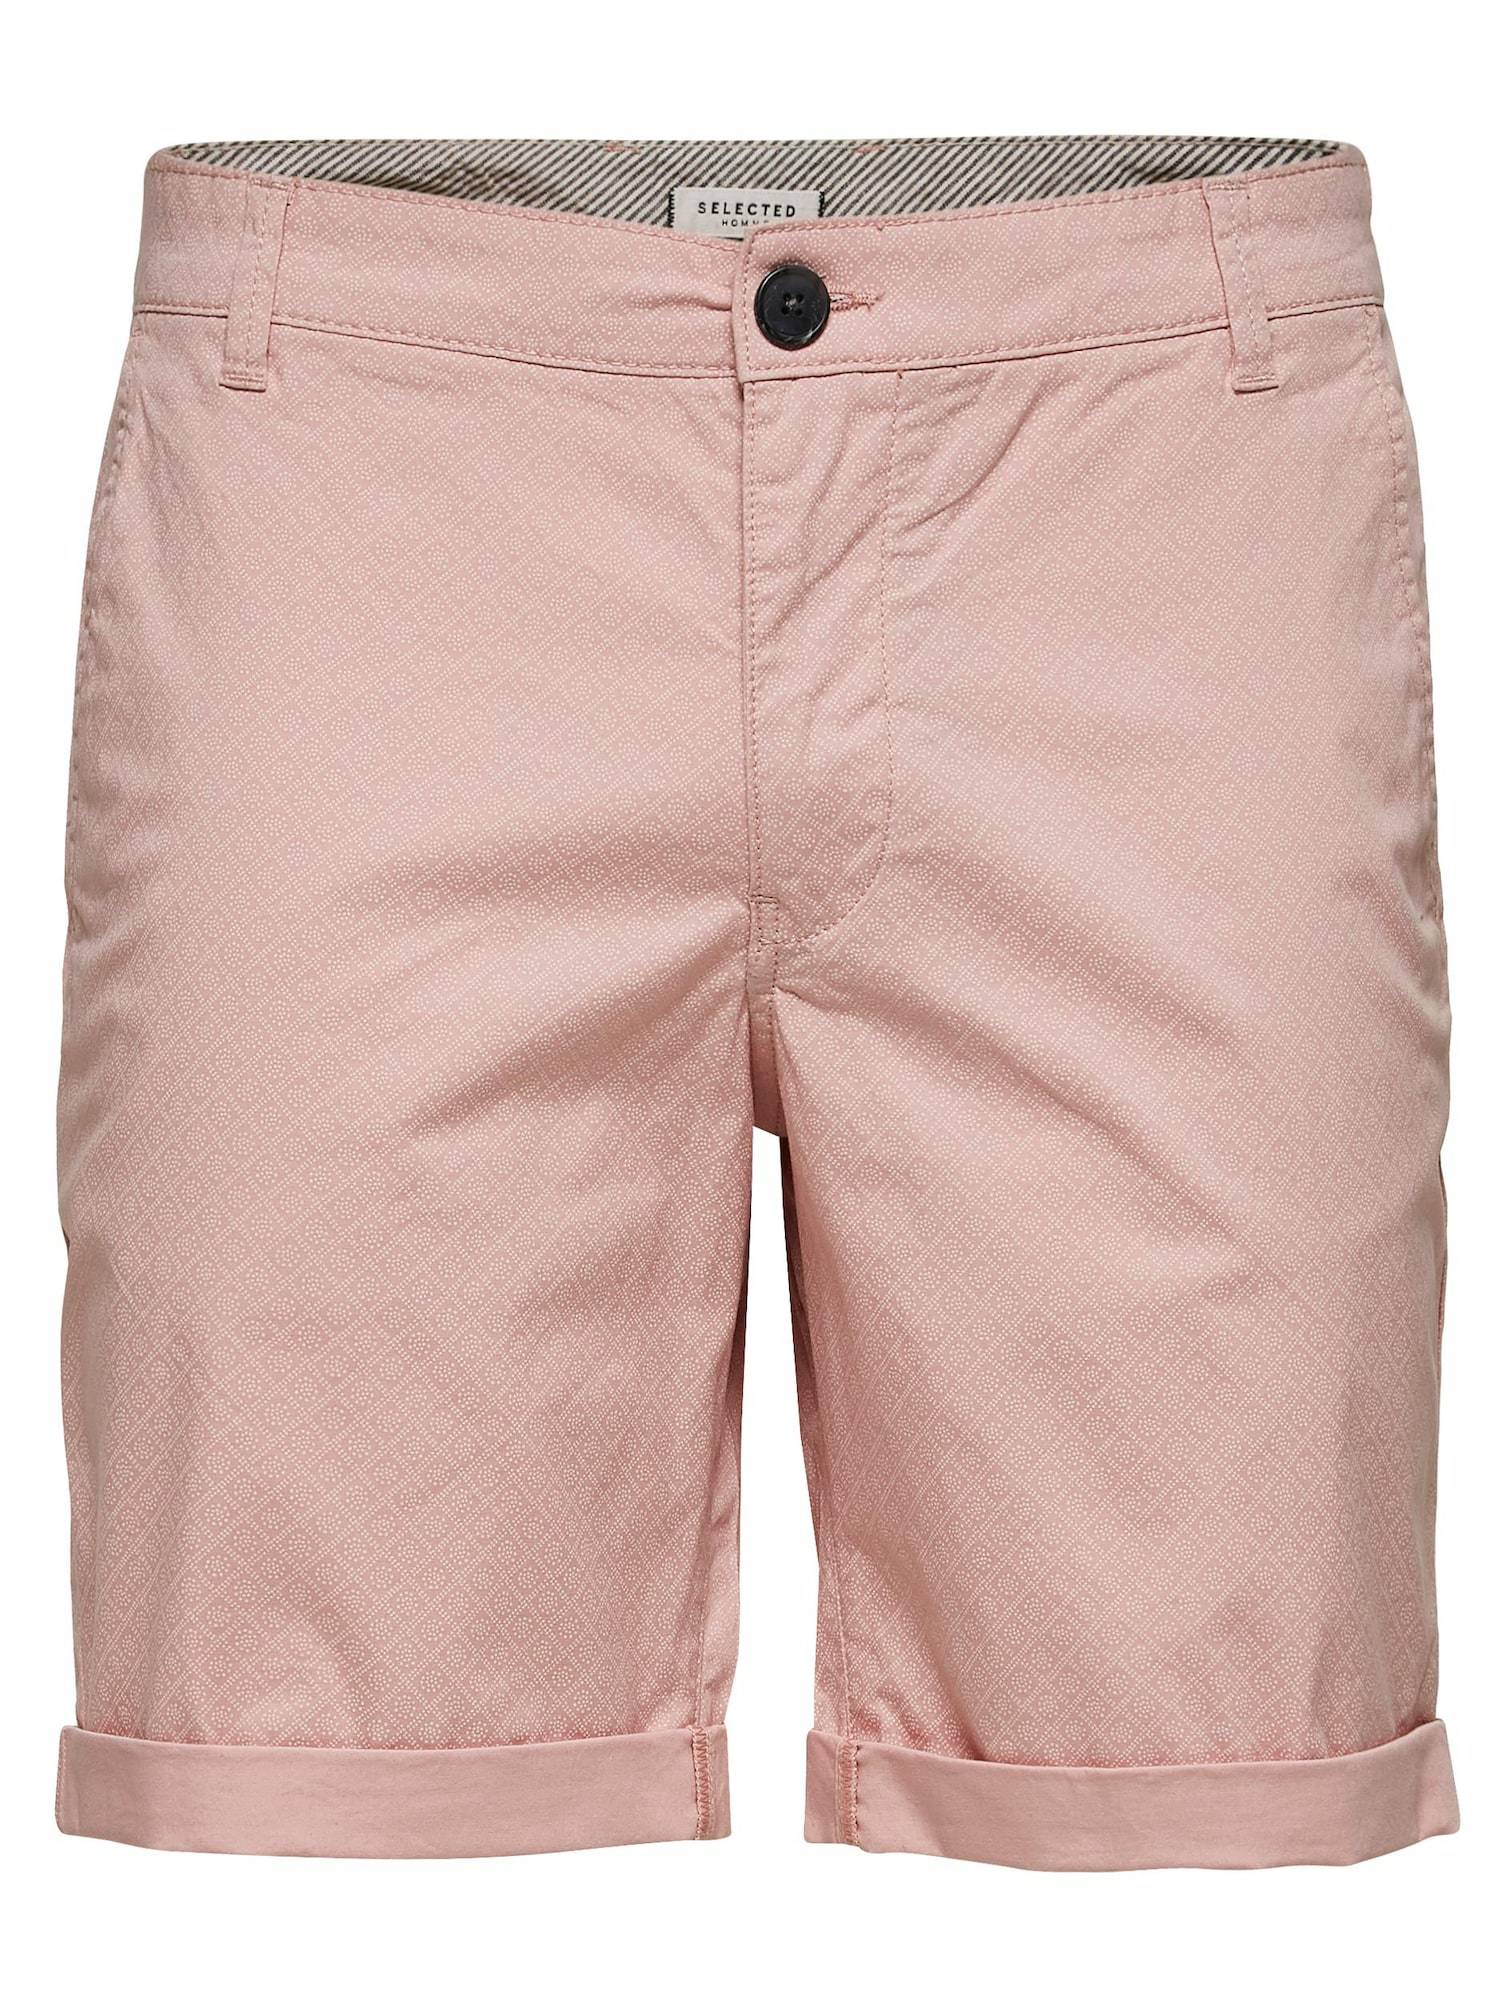 SELECTED HOMME Pantalon chino 'Paris'  - Rose - Taille: L - male